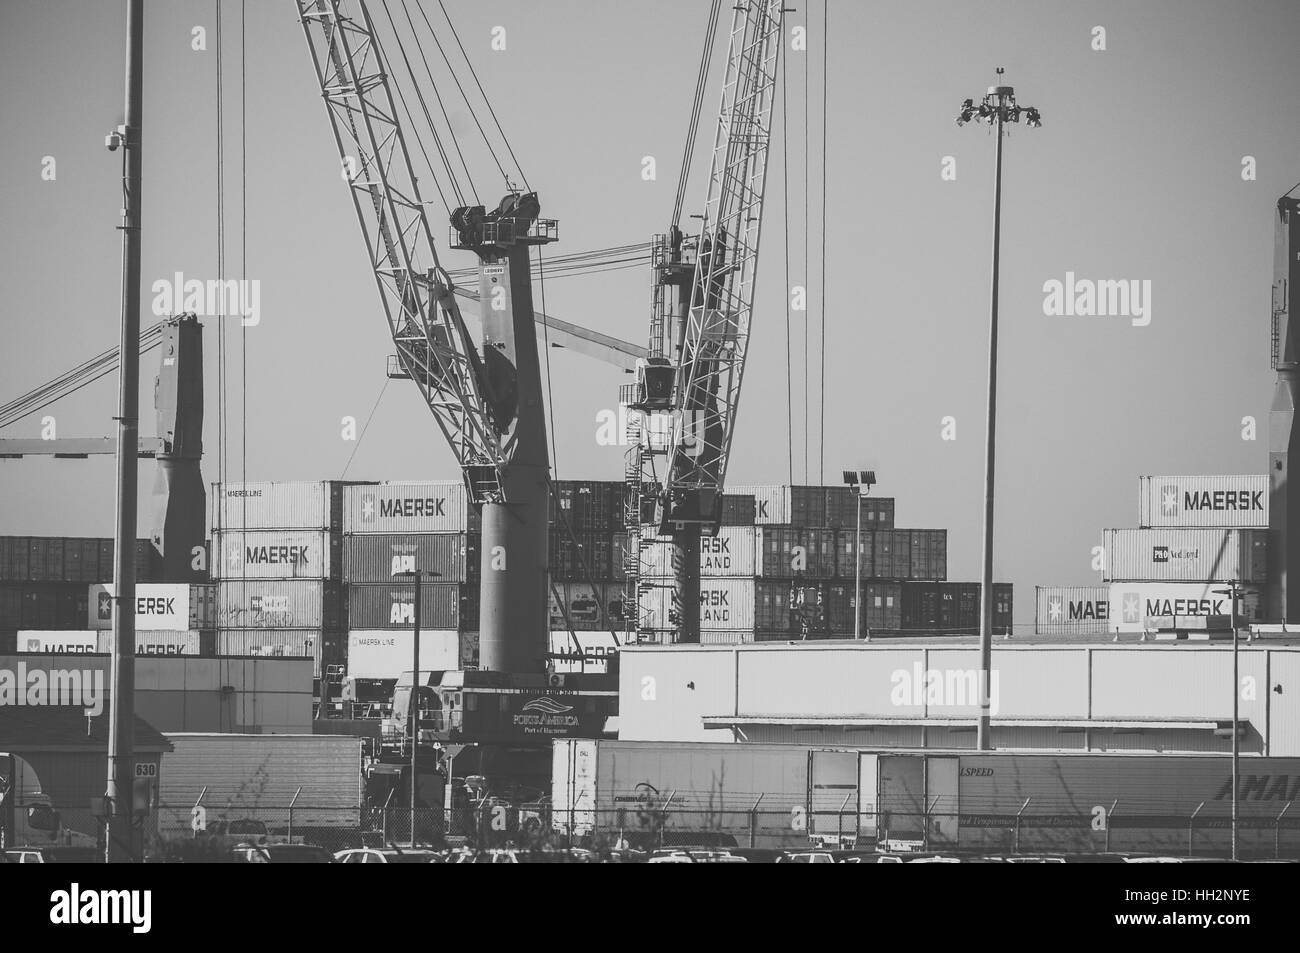 The Port of Hueneme in Ventura County on the Santa Barbara Channel - Stock Image